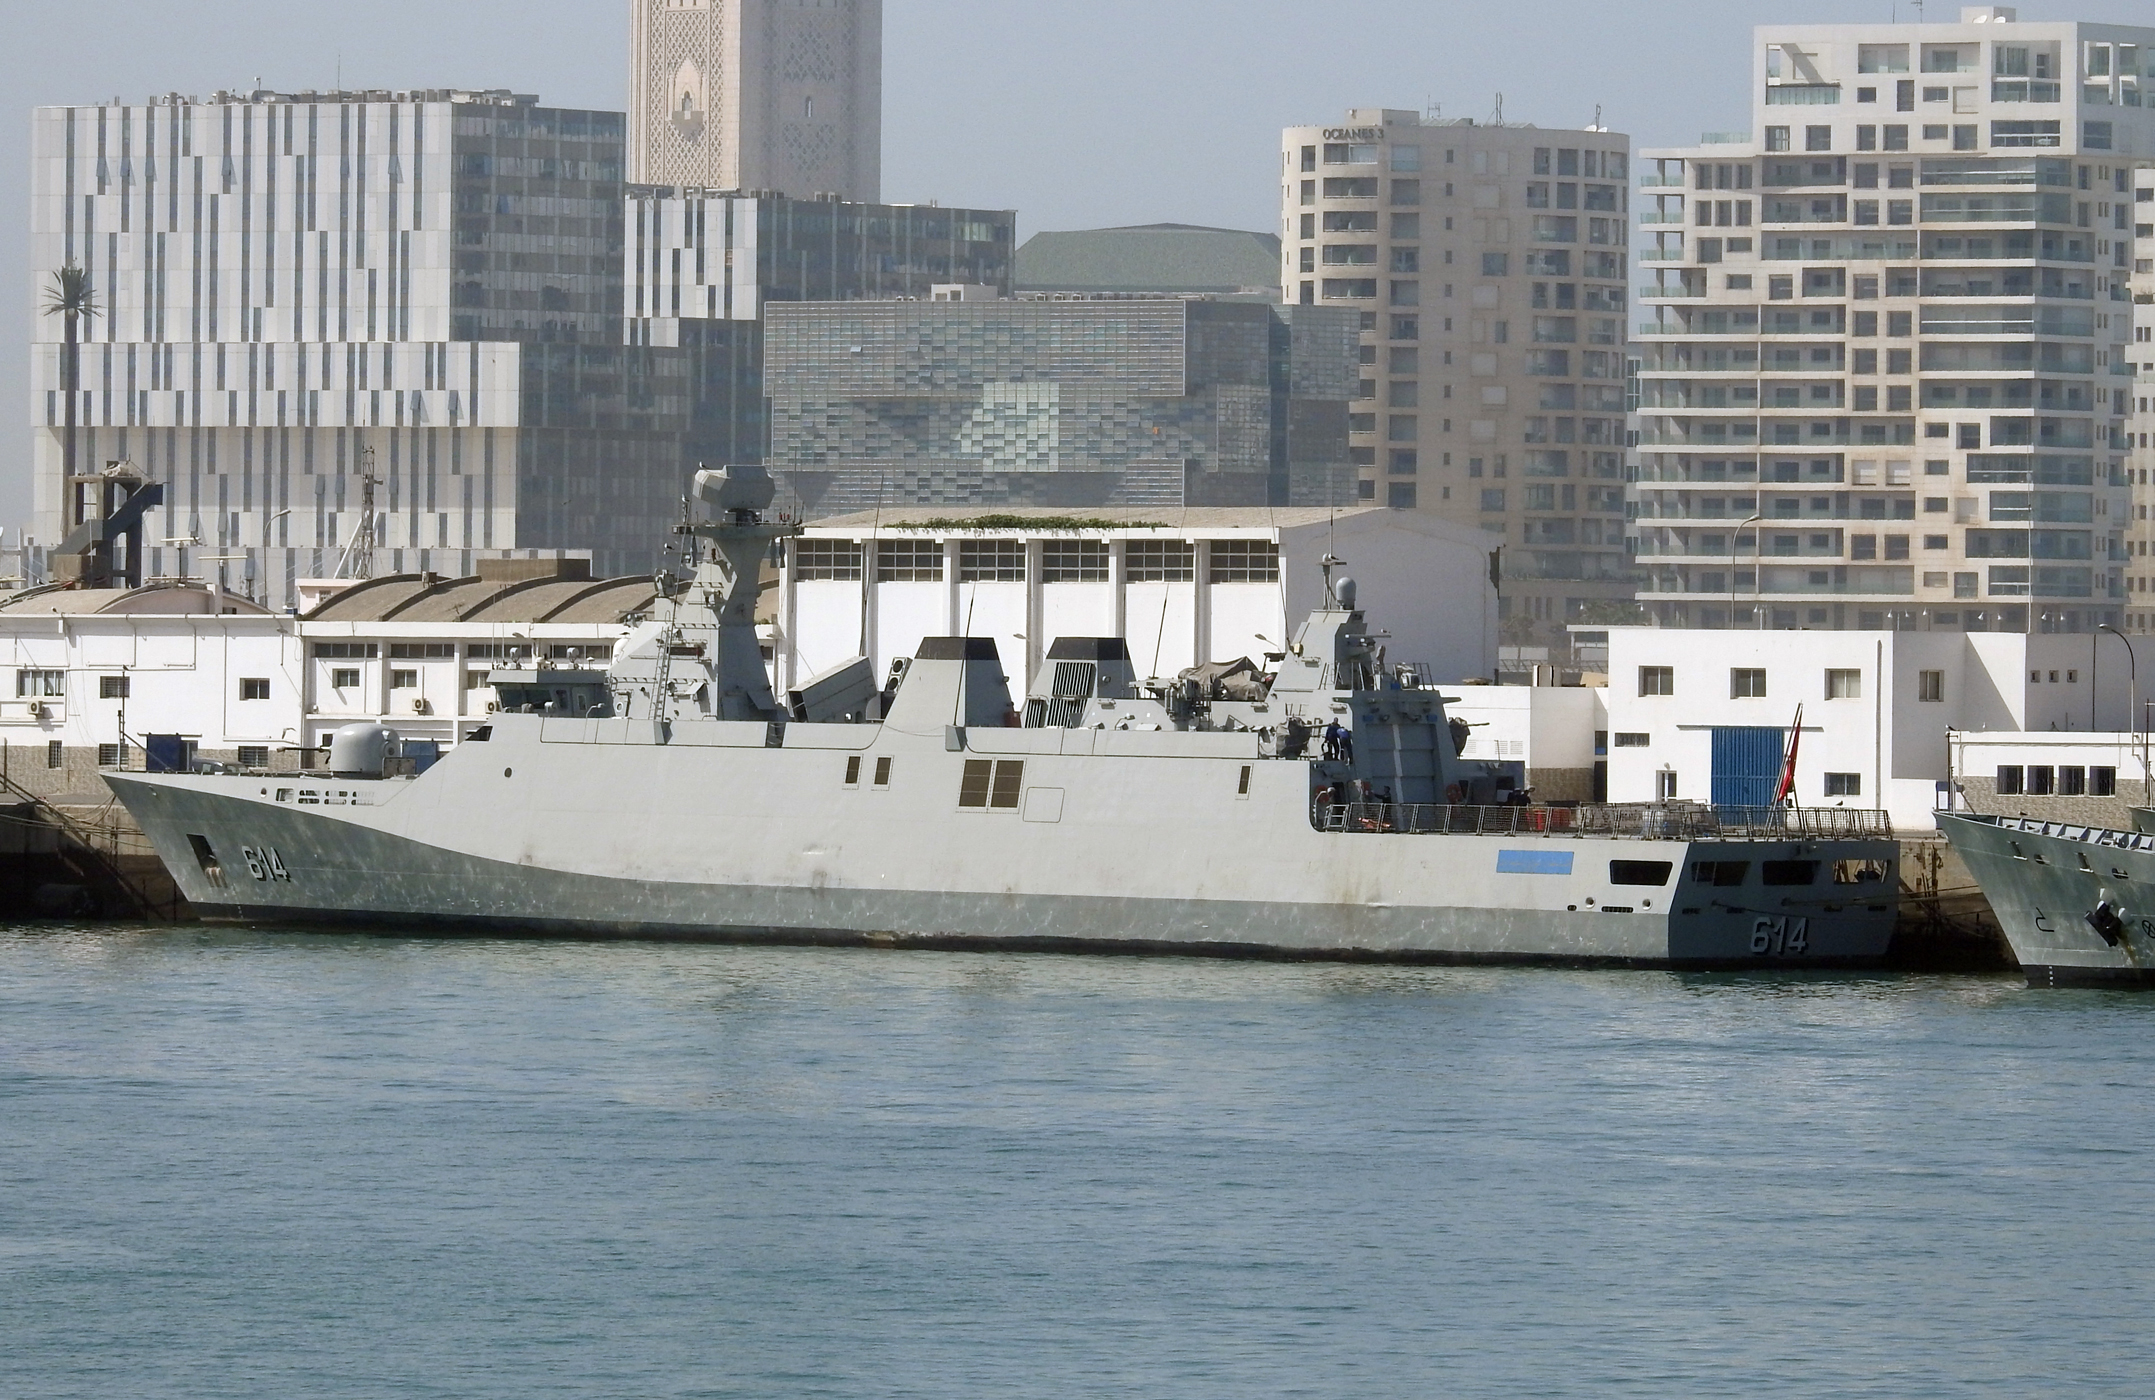 Royal Moroccan Navy Sigma class frigates / Frégates marocaines multimissions Sigma - Page 25 3043072